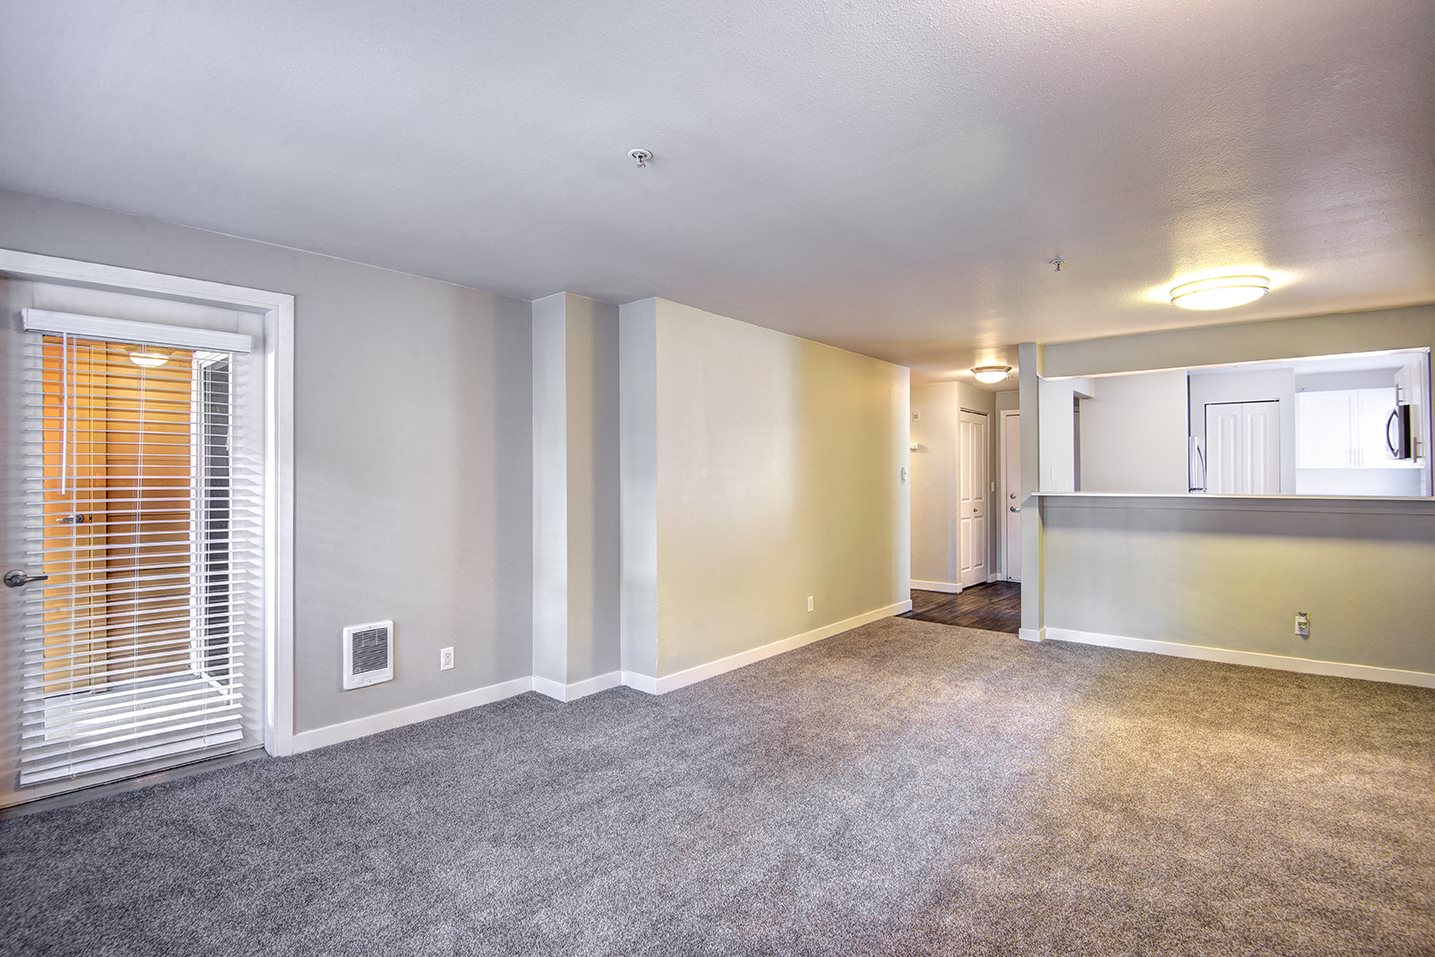 spacious living and dining room areas